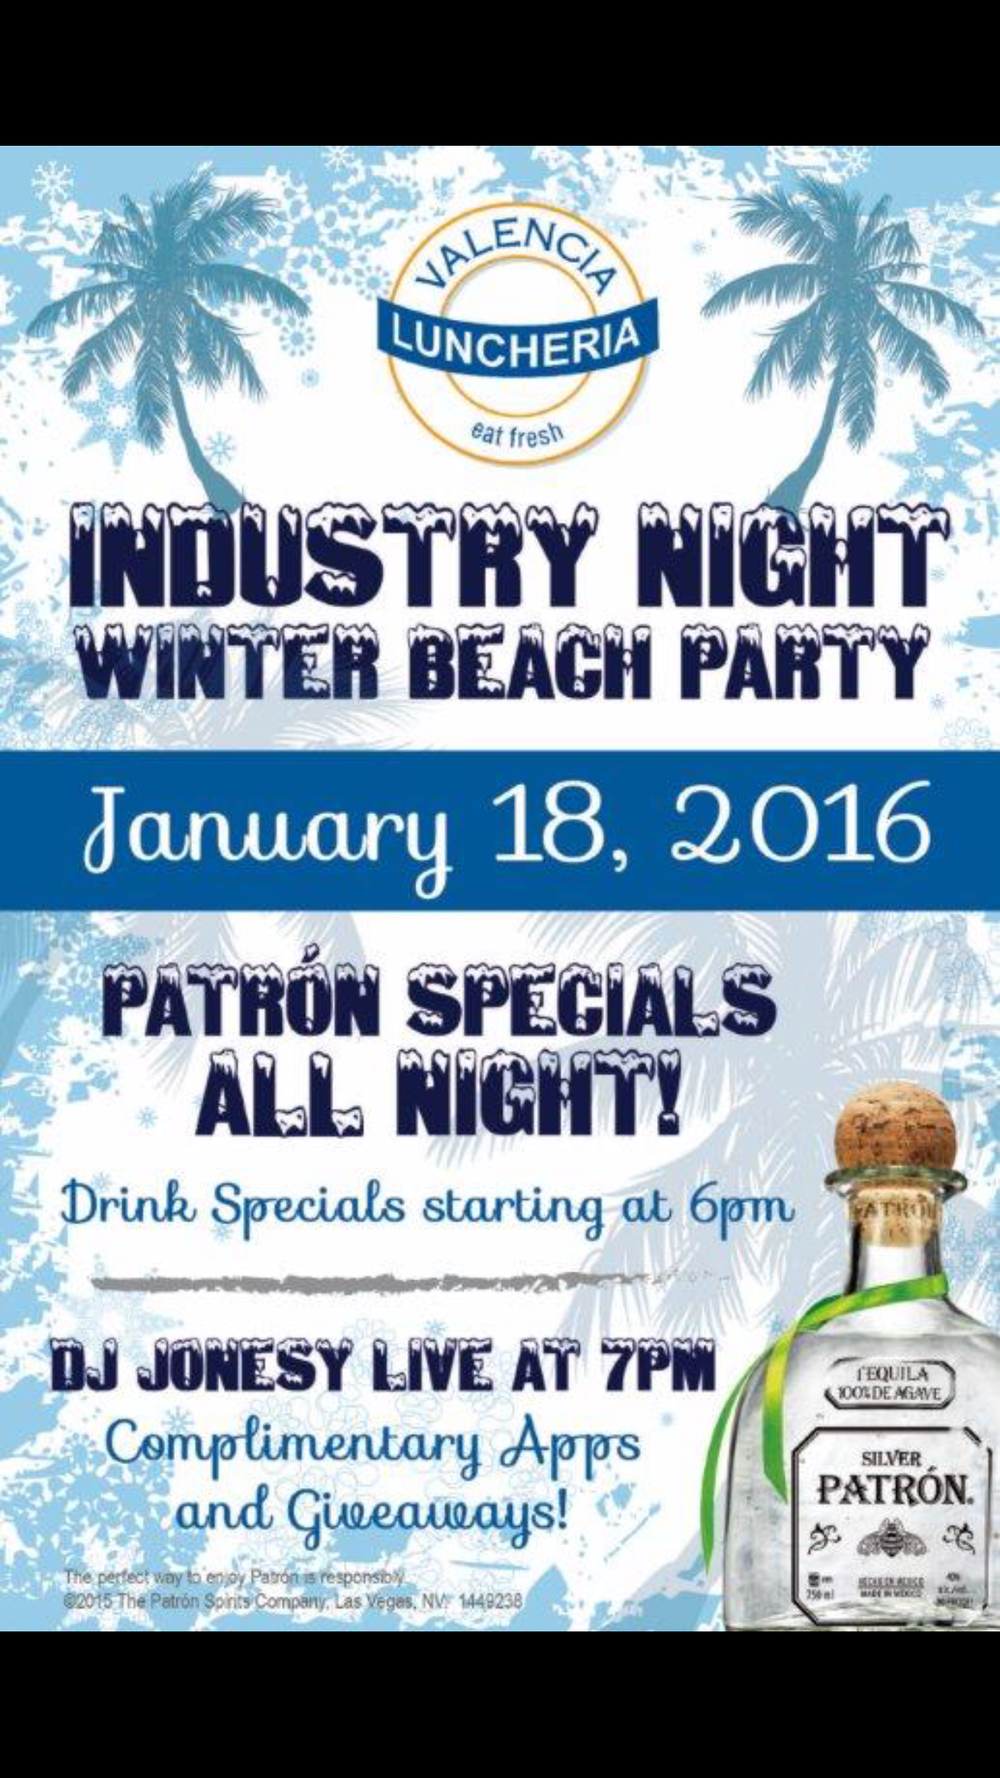 MONDAY, JANUARY 18TH... EVERYONE'S INVITED!!!  COMPLIMENTARY S'MORES + PASSED APPS, DRINK SPECIALS & MUSIC BY YOURS TRULY AT 7PM!